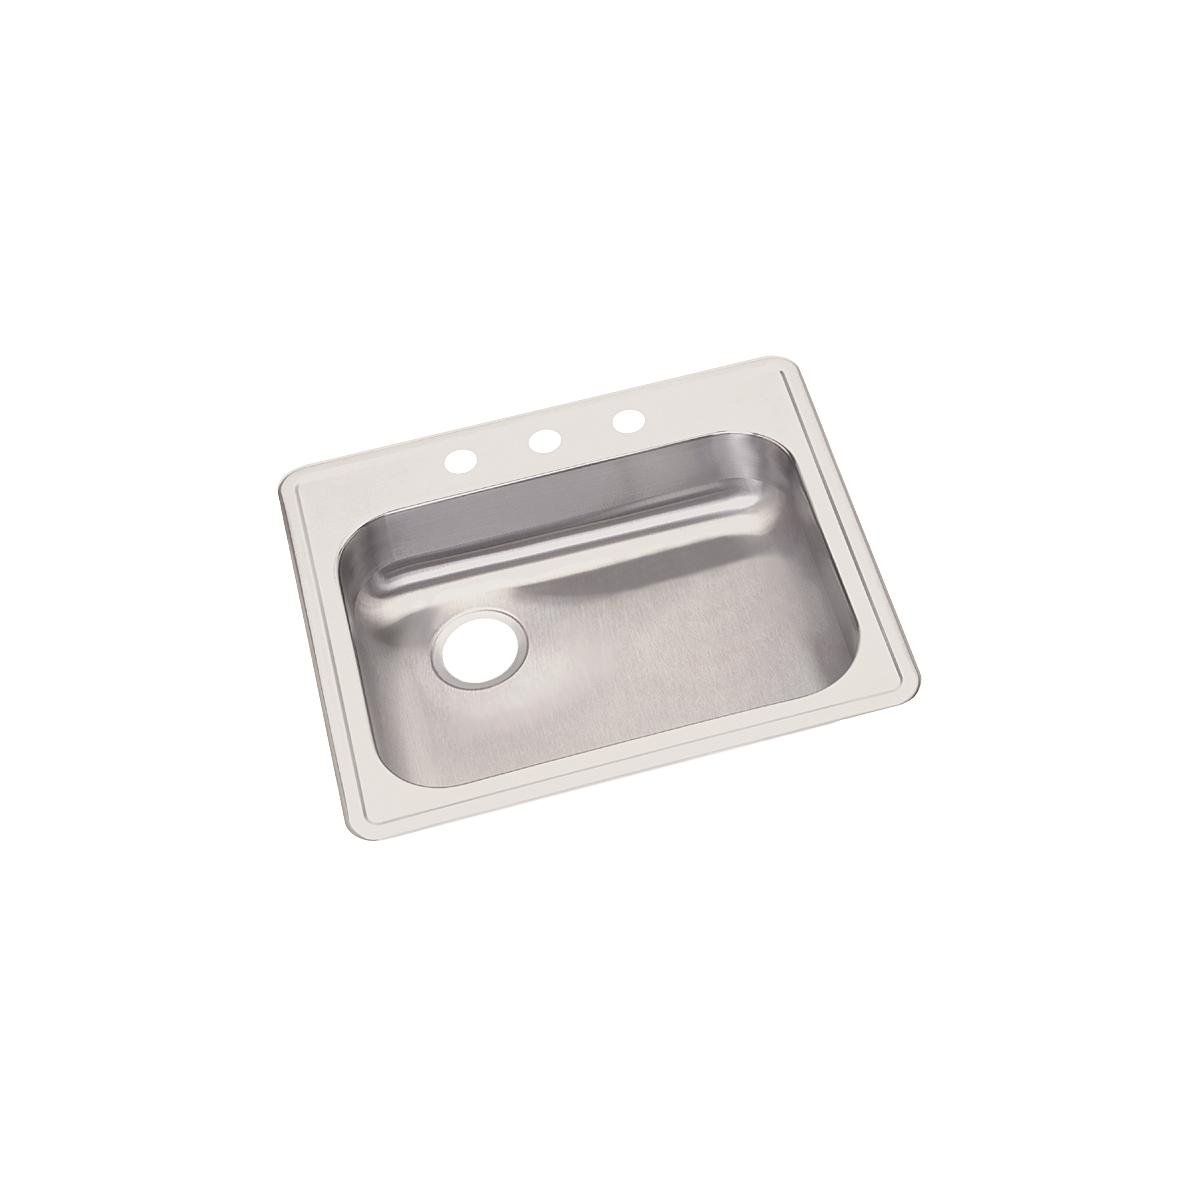 Dayton GE12521L3 Single Bowl Top Mount Stainless Steel Sink